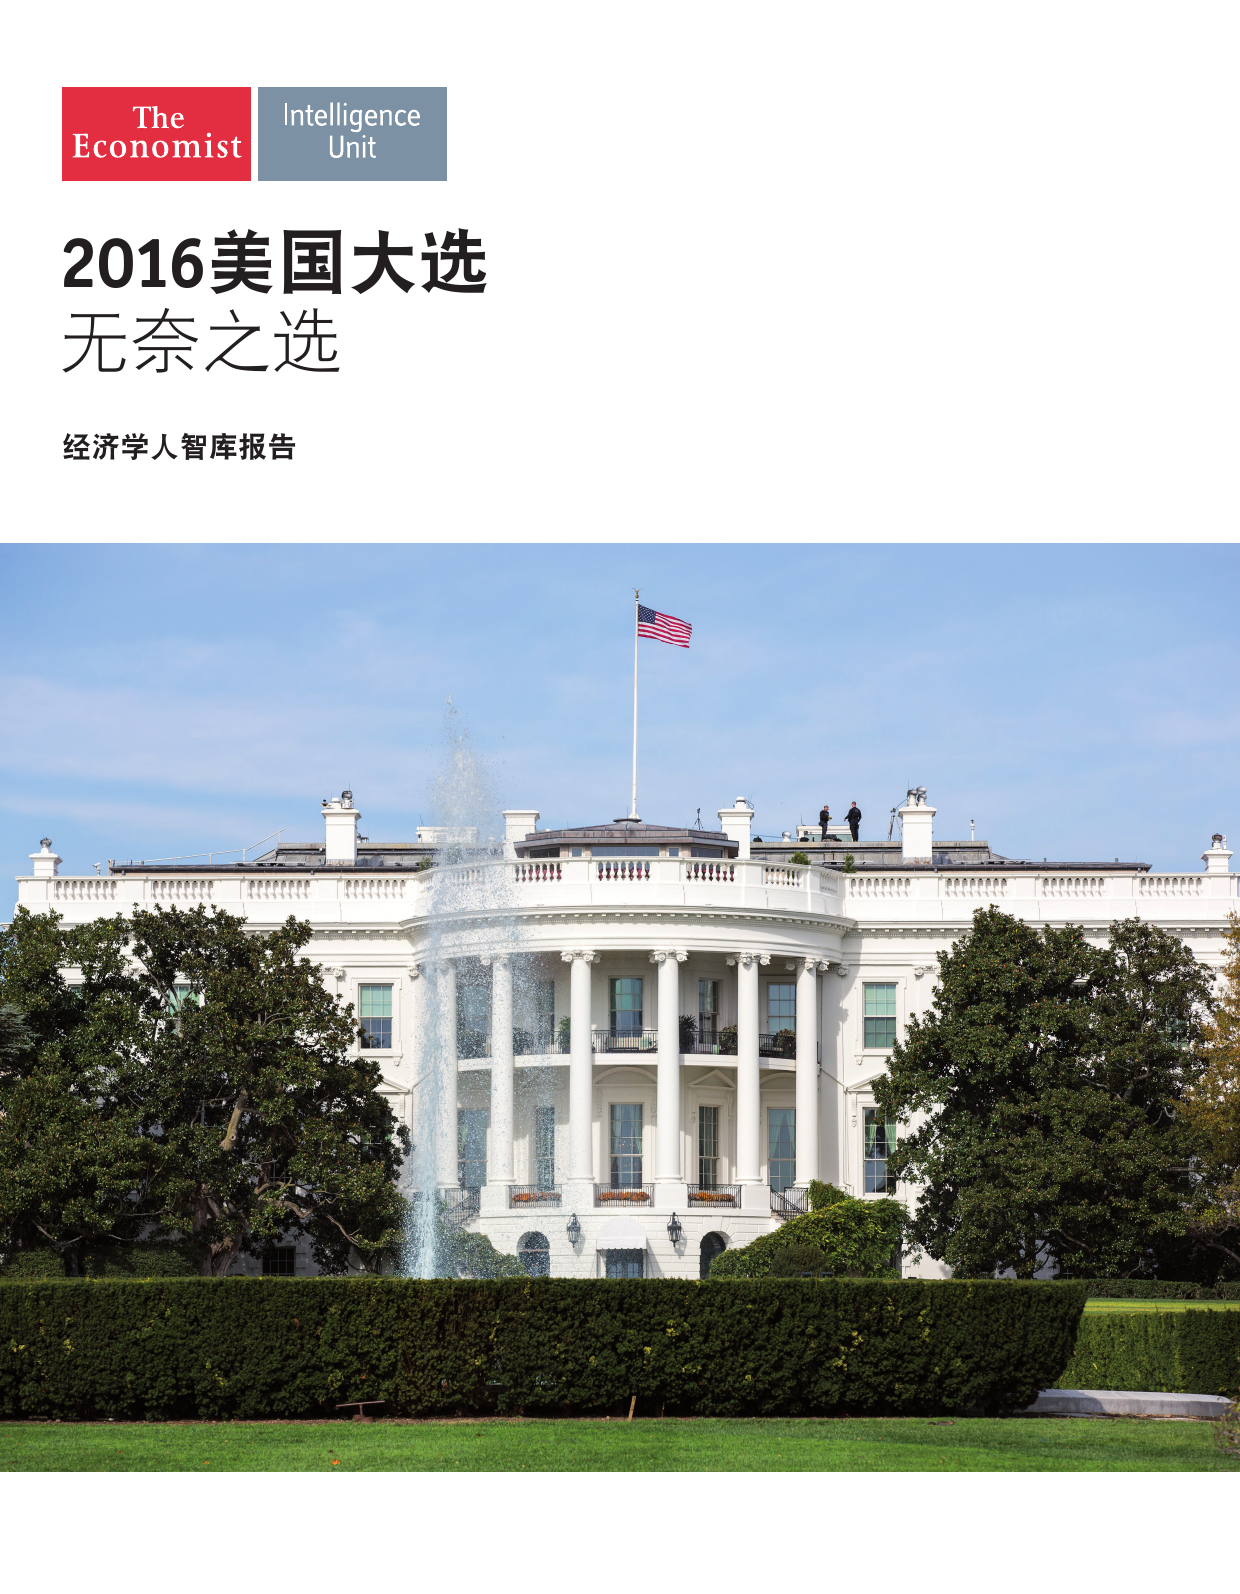 election_2016_chinese_version_000001